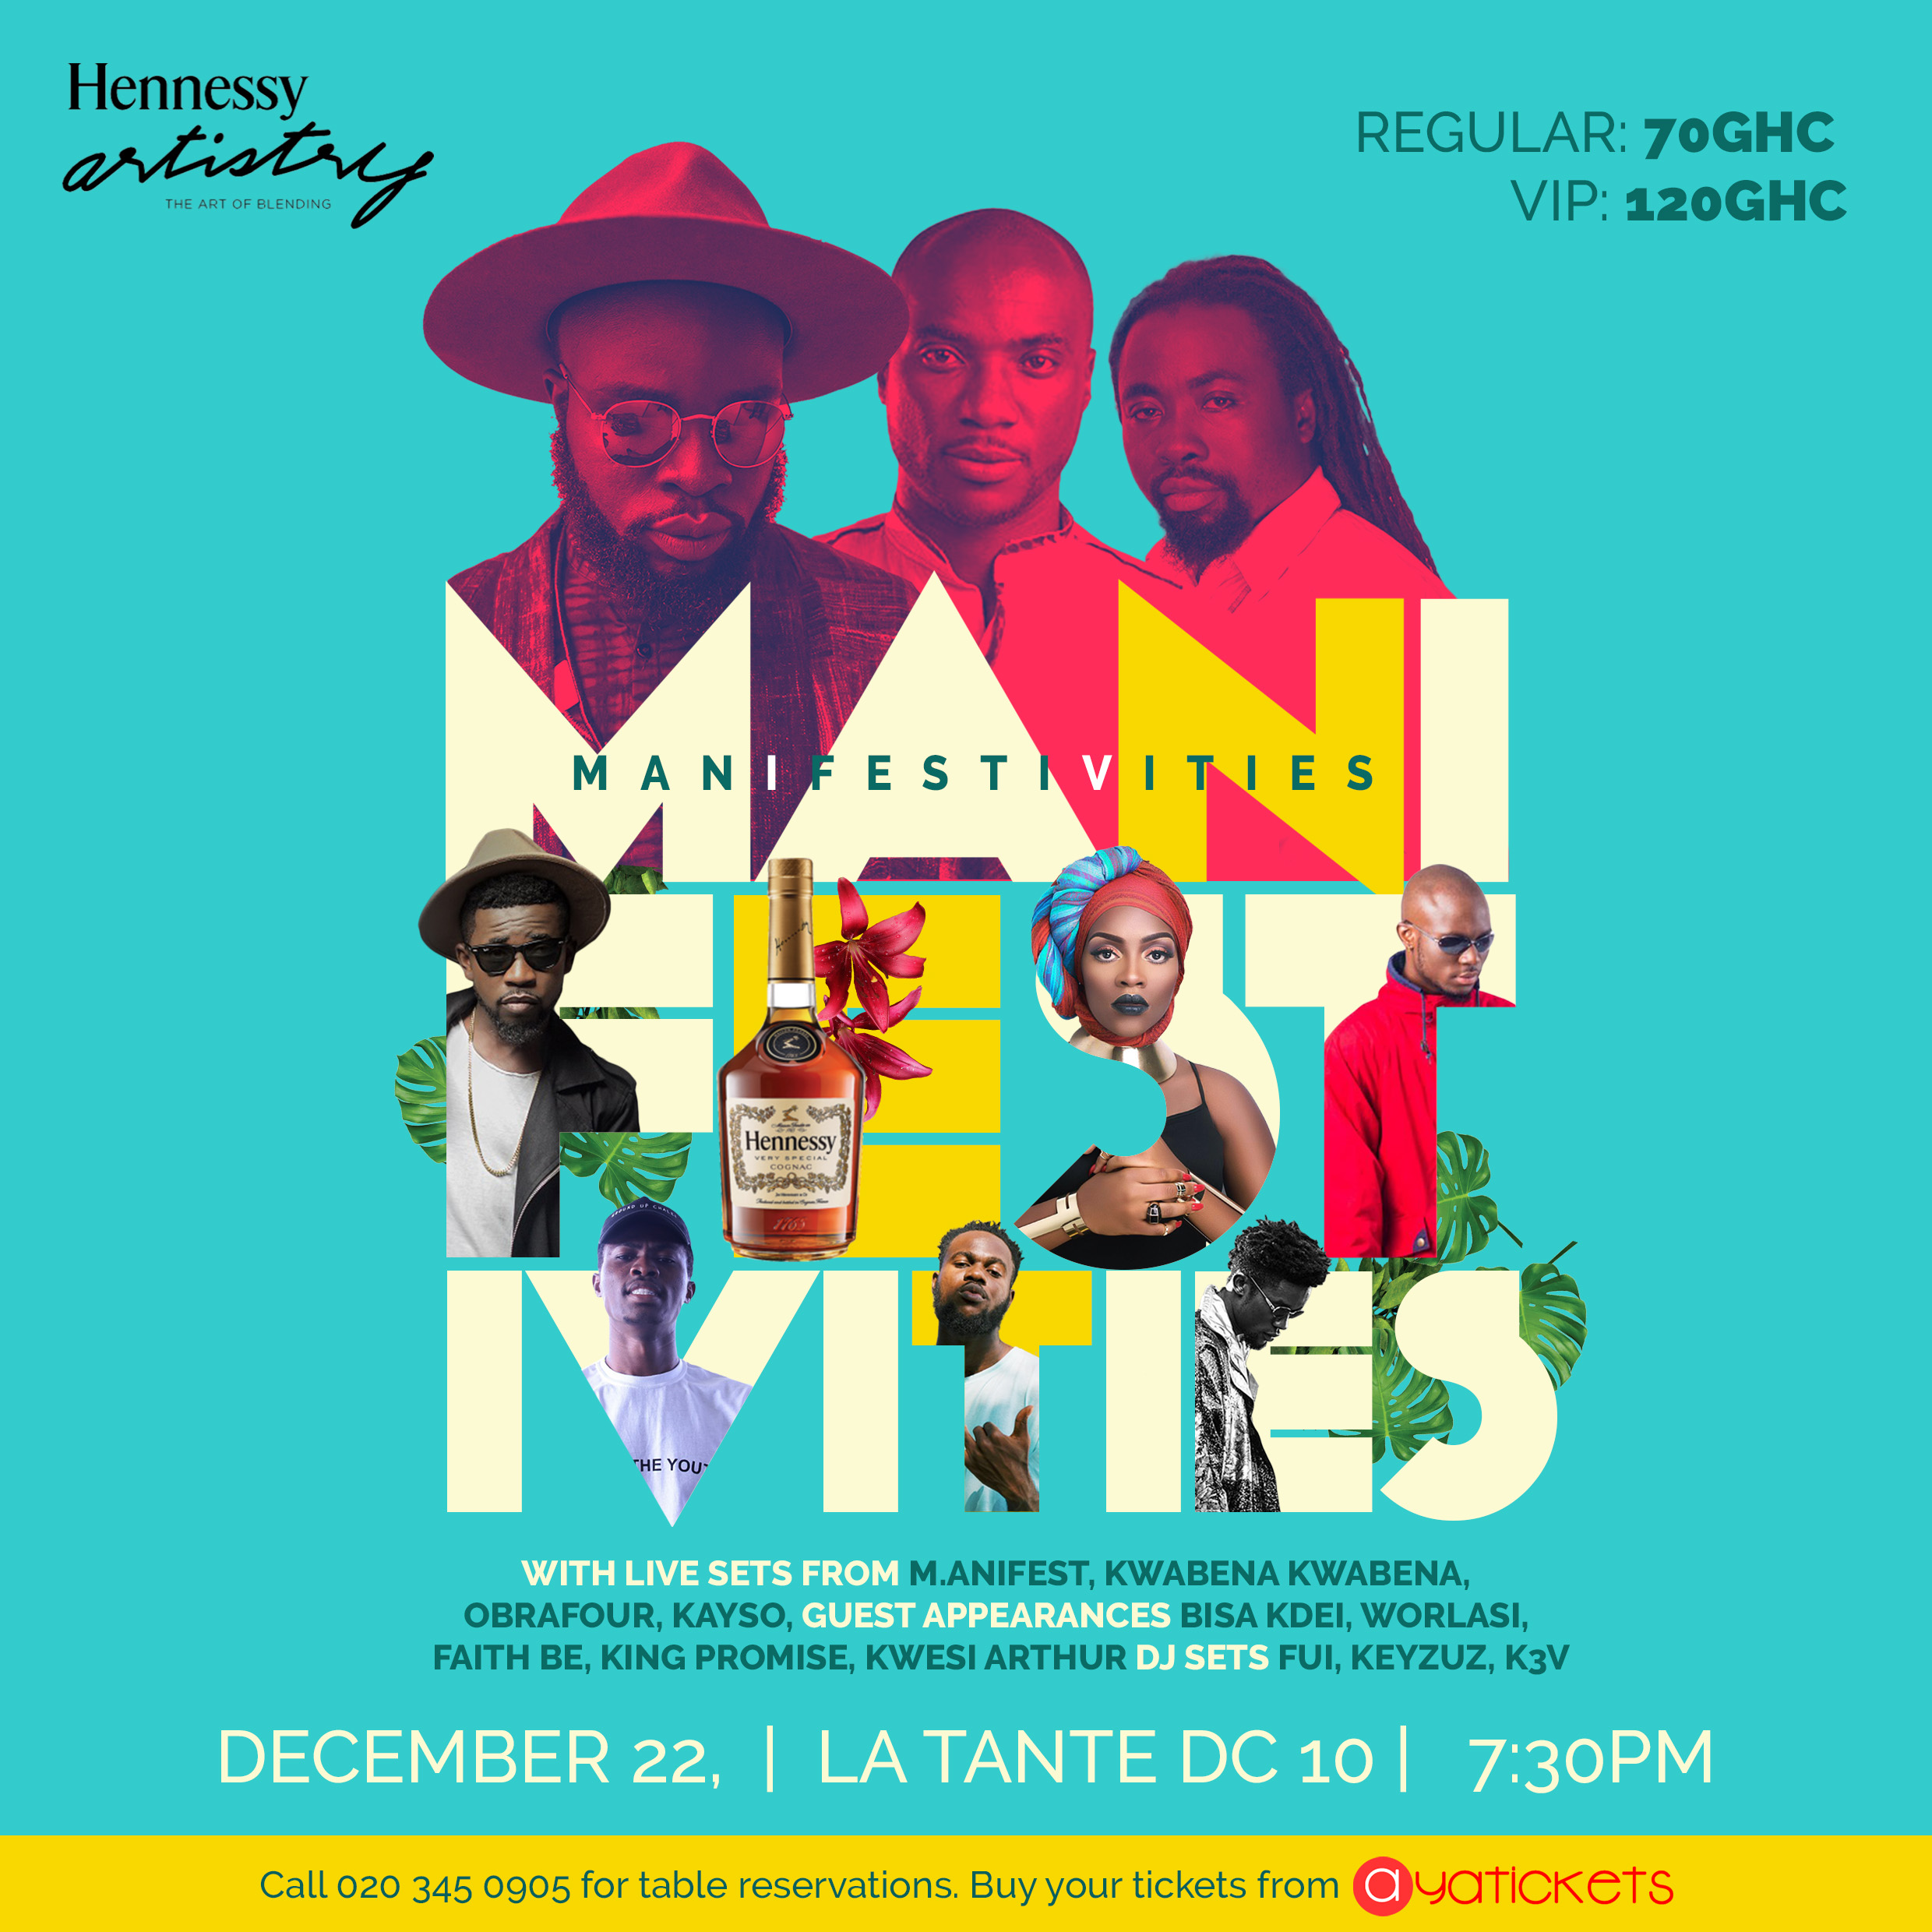 Hennessy Artistry Presents Fifth Edition of Manifestivities